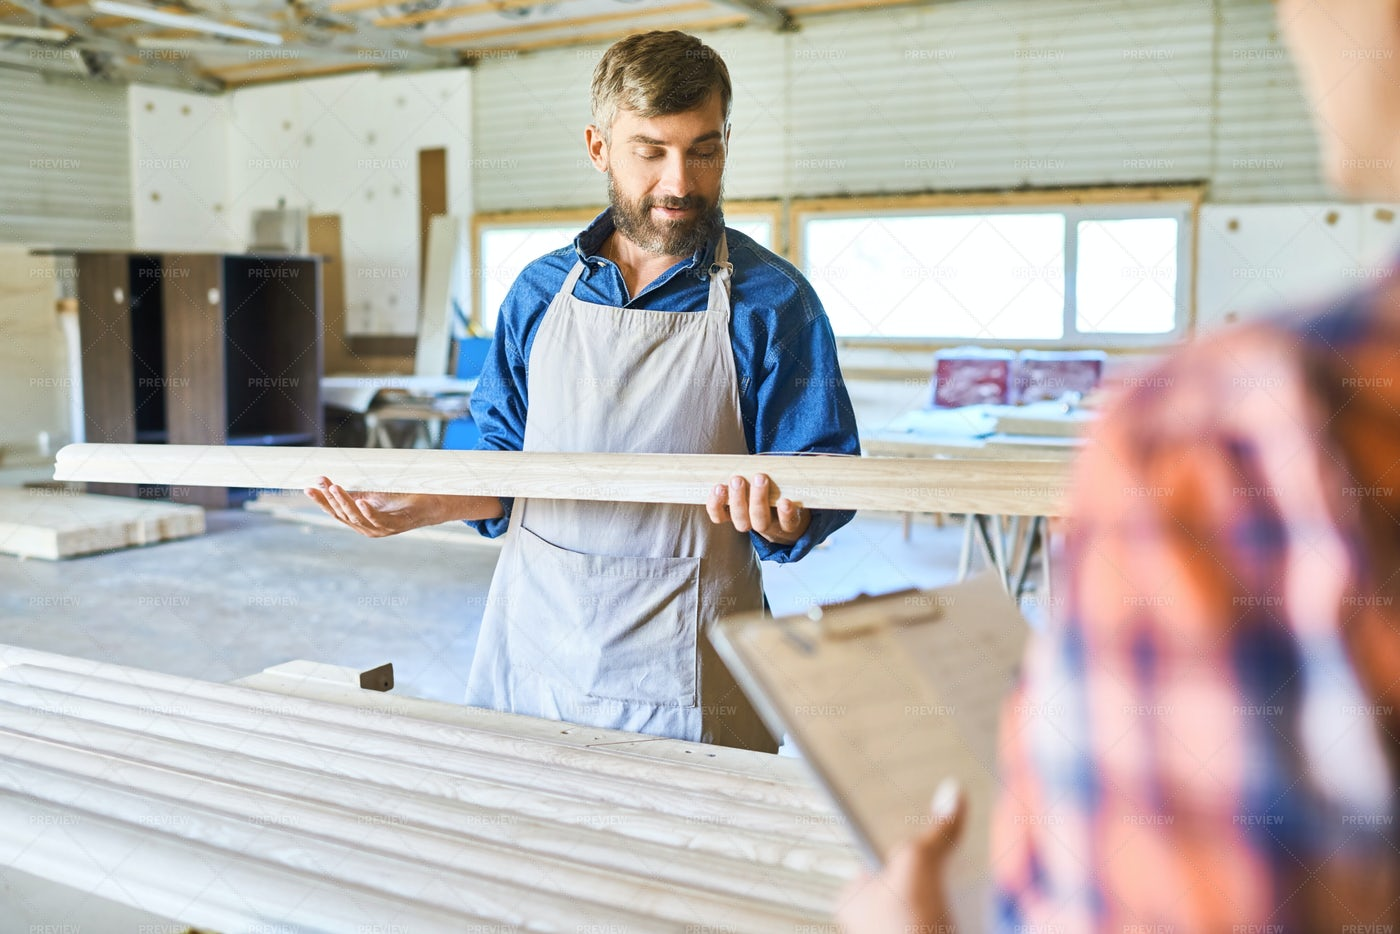 Skilled Carpenter Choosing Wood...: Stock Photos